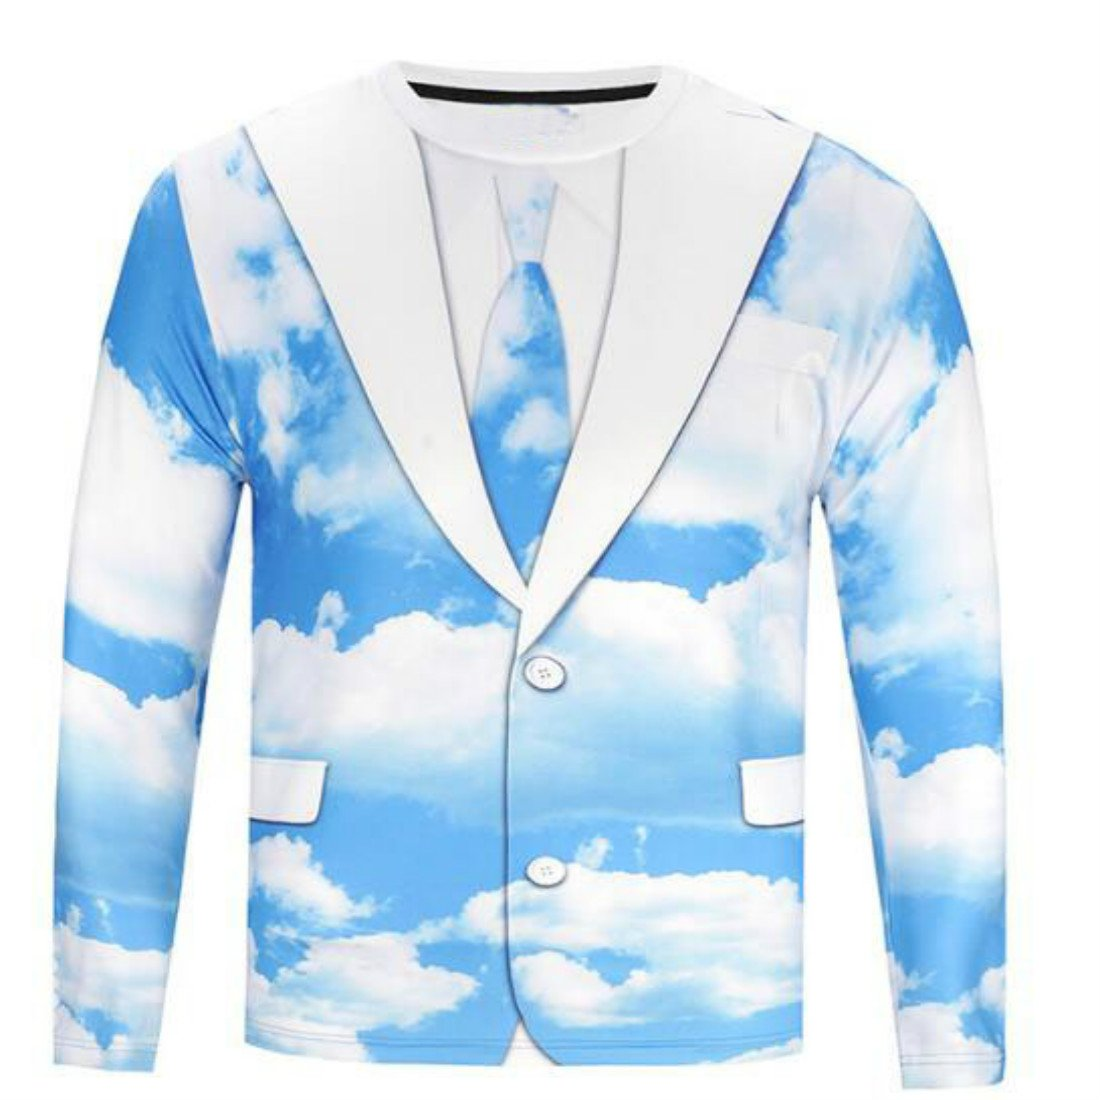 Colygamala Men's Casual Printed Suit & Tie Tuxedo Long Sleeve T-Shirt 5Color